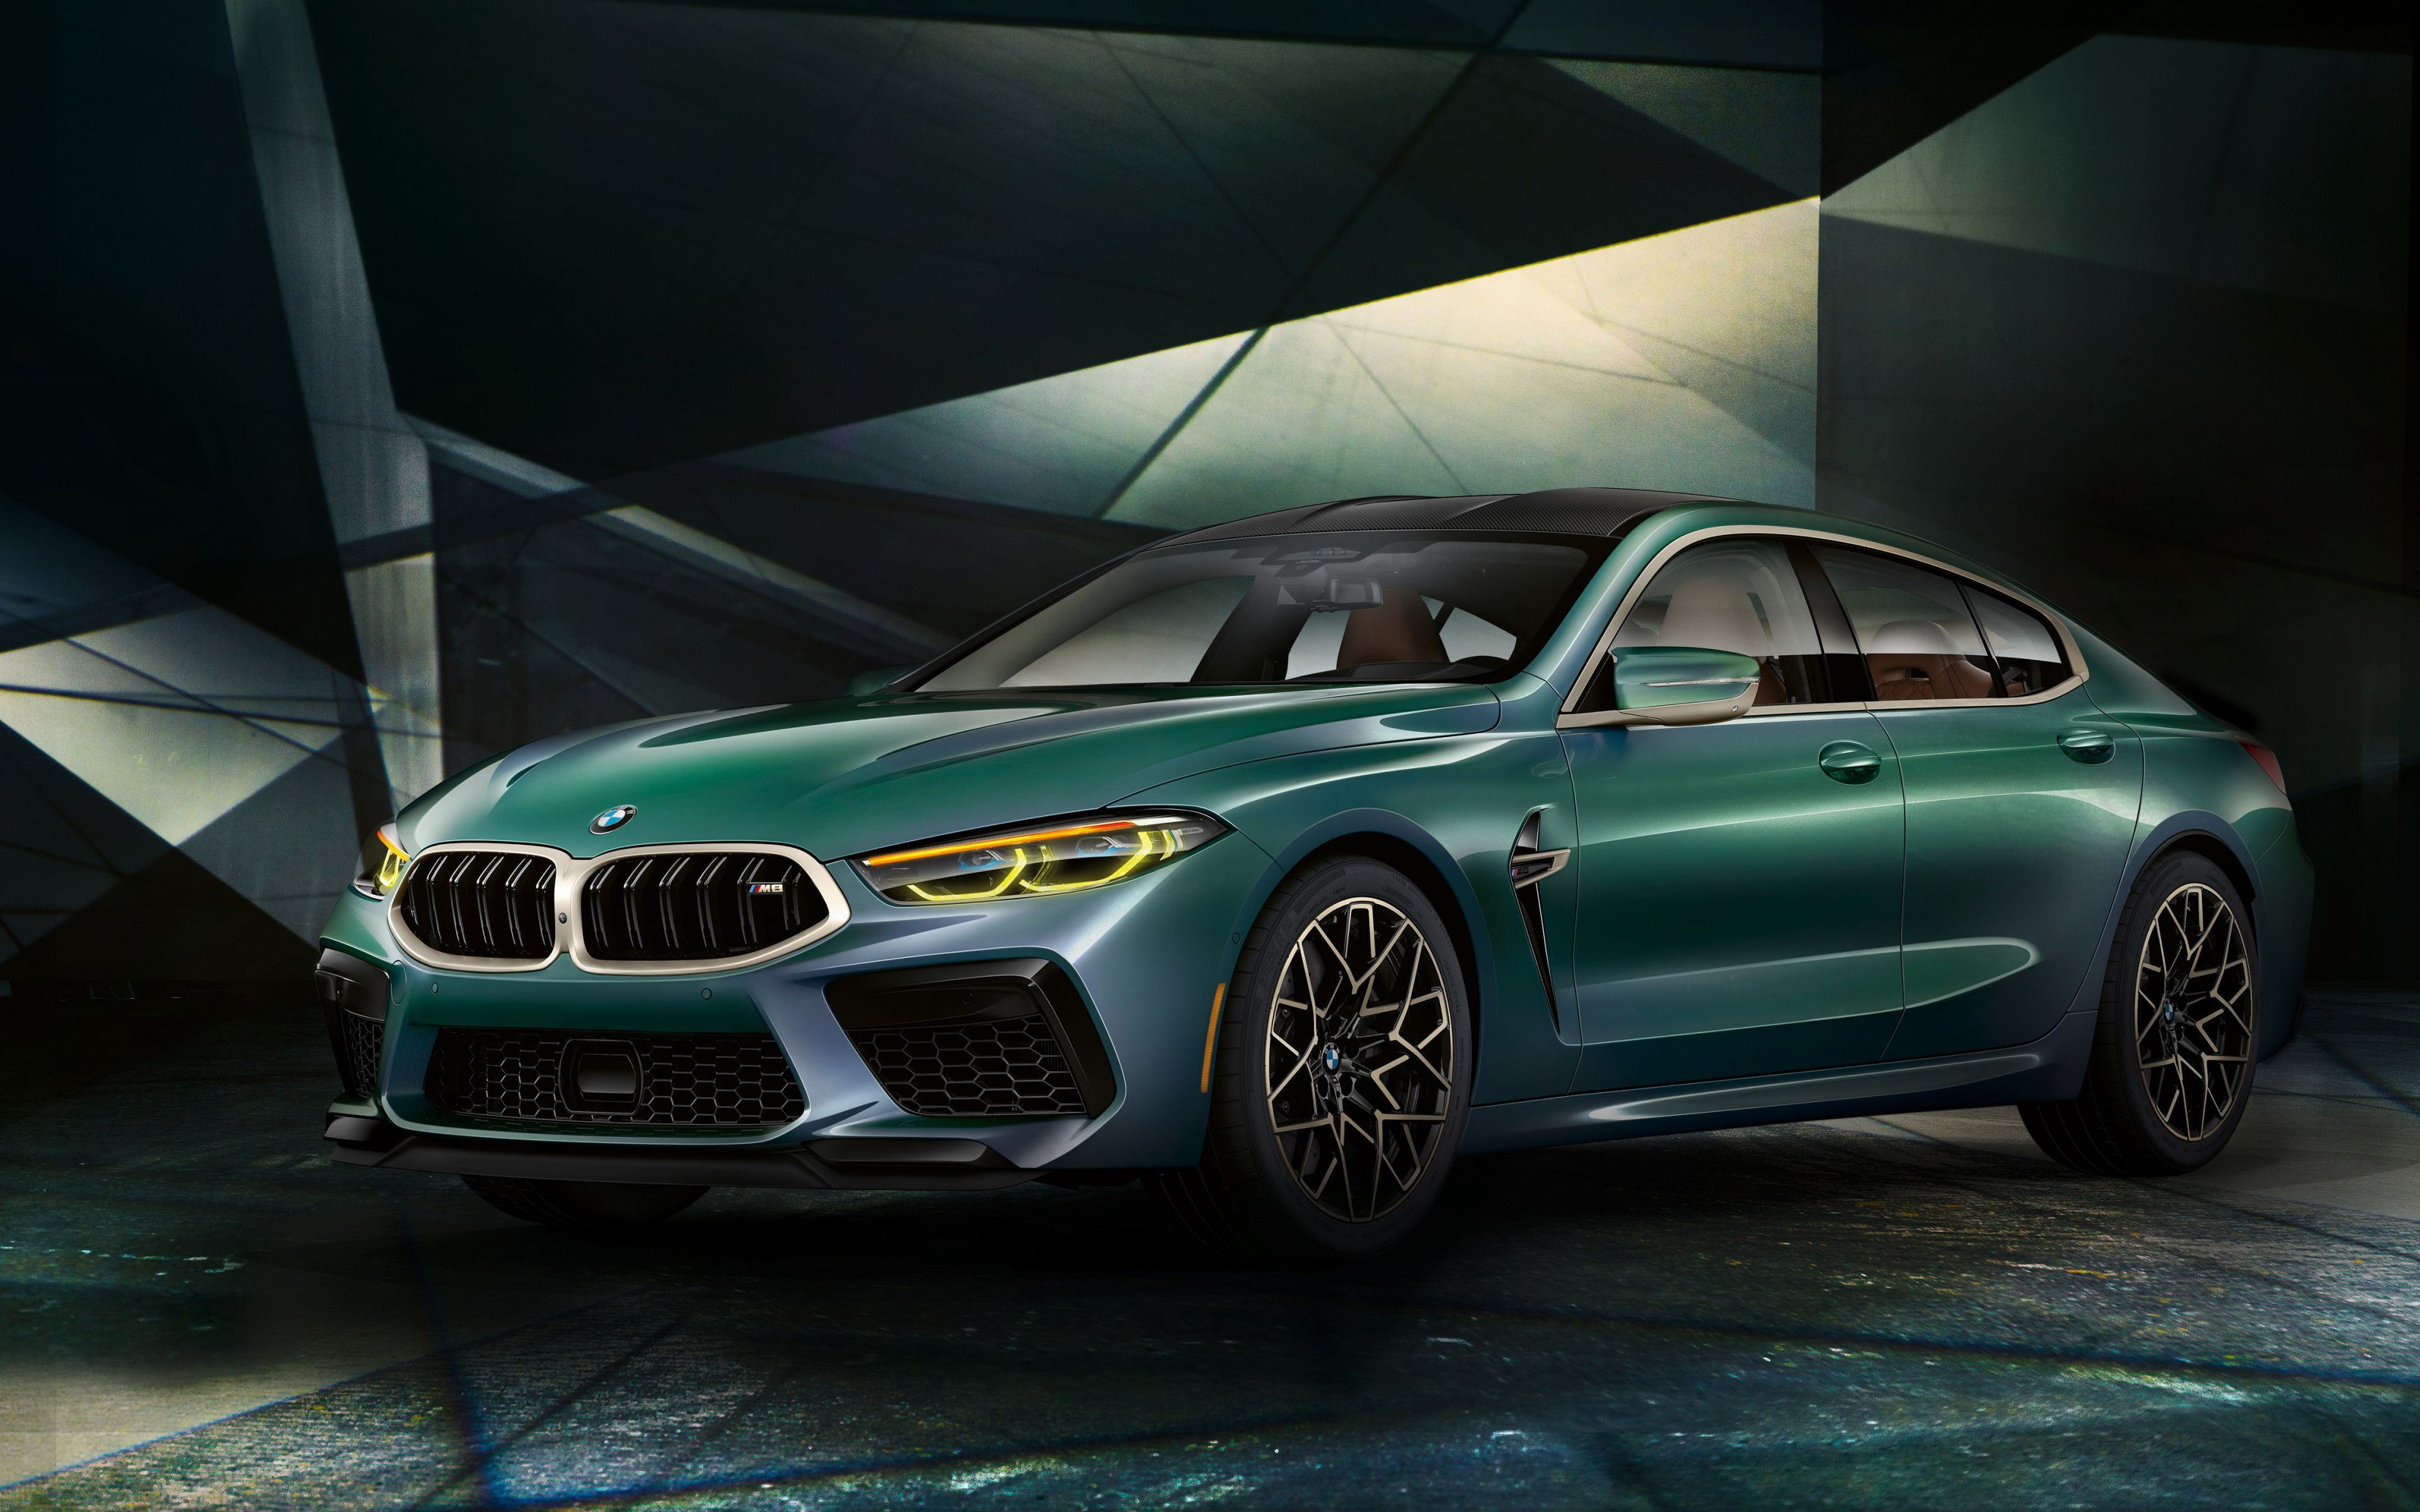 3840x2400 2020 BMW M8 Gran Coupe first edition green car 3840x2400